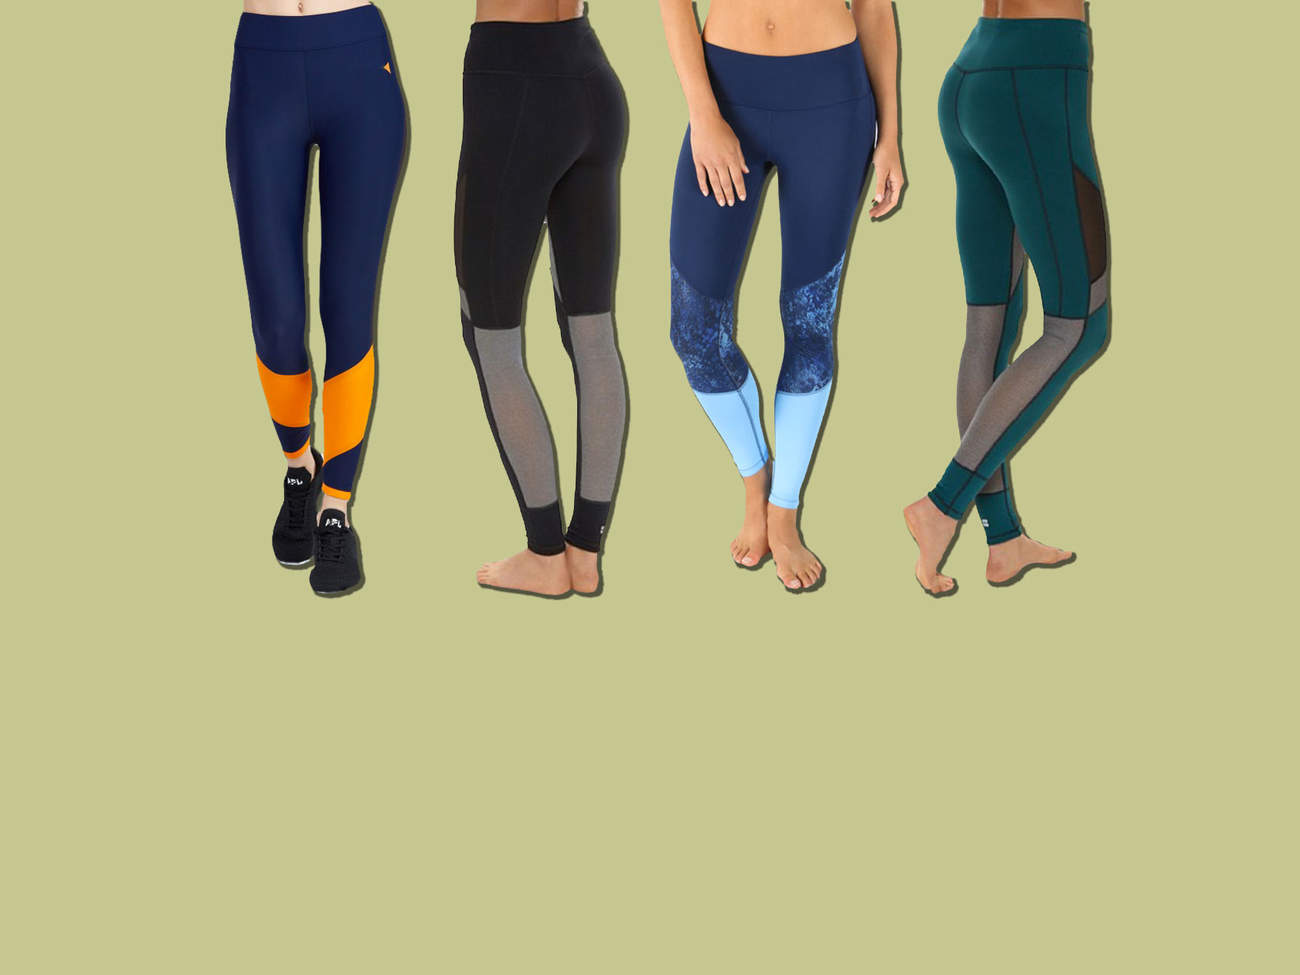 tights-legging-group